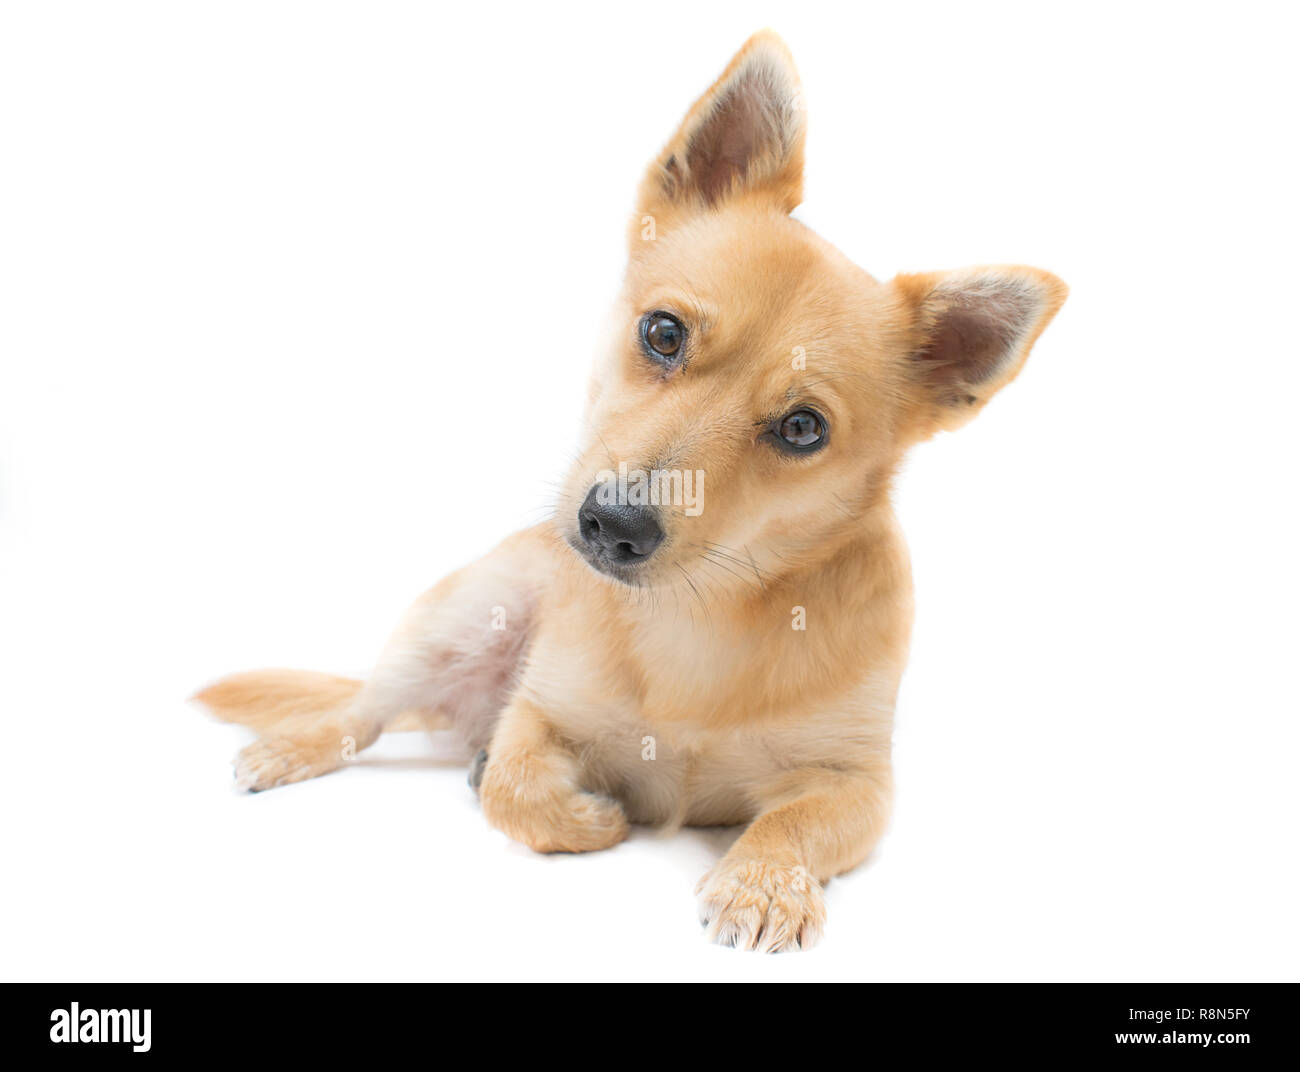 Adorable Crossbreed dog with curious expression. Dog is a mix between a Jack Russell terrier and a chihuahua. - Stock Image